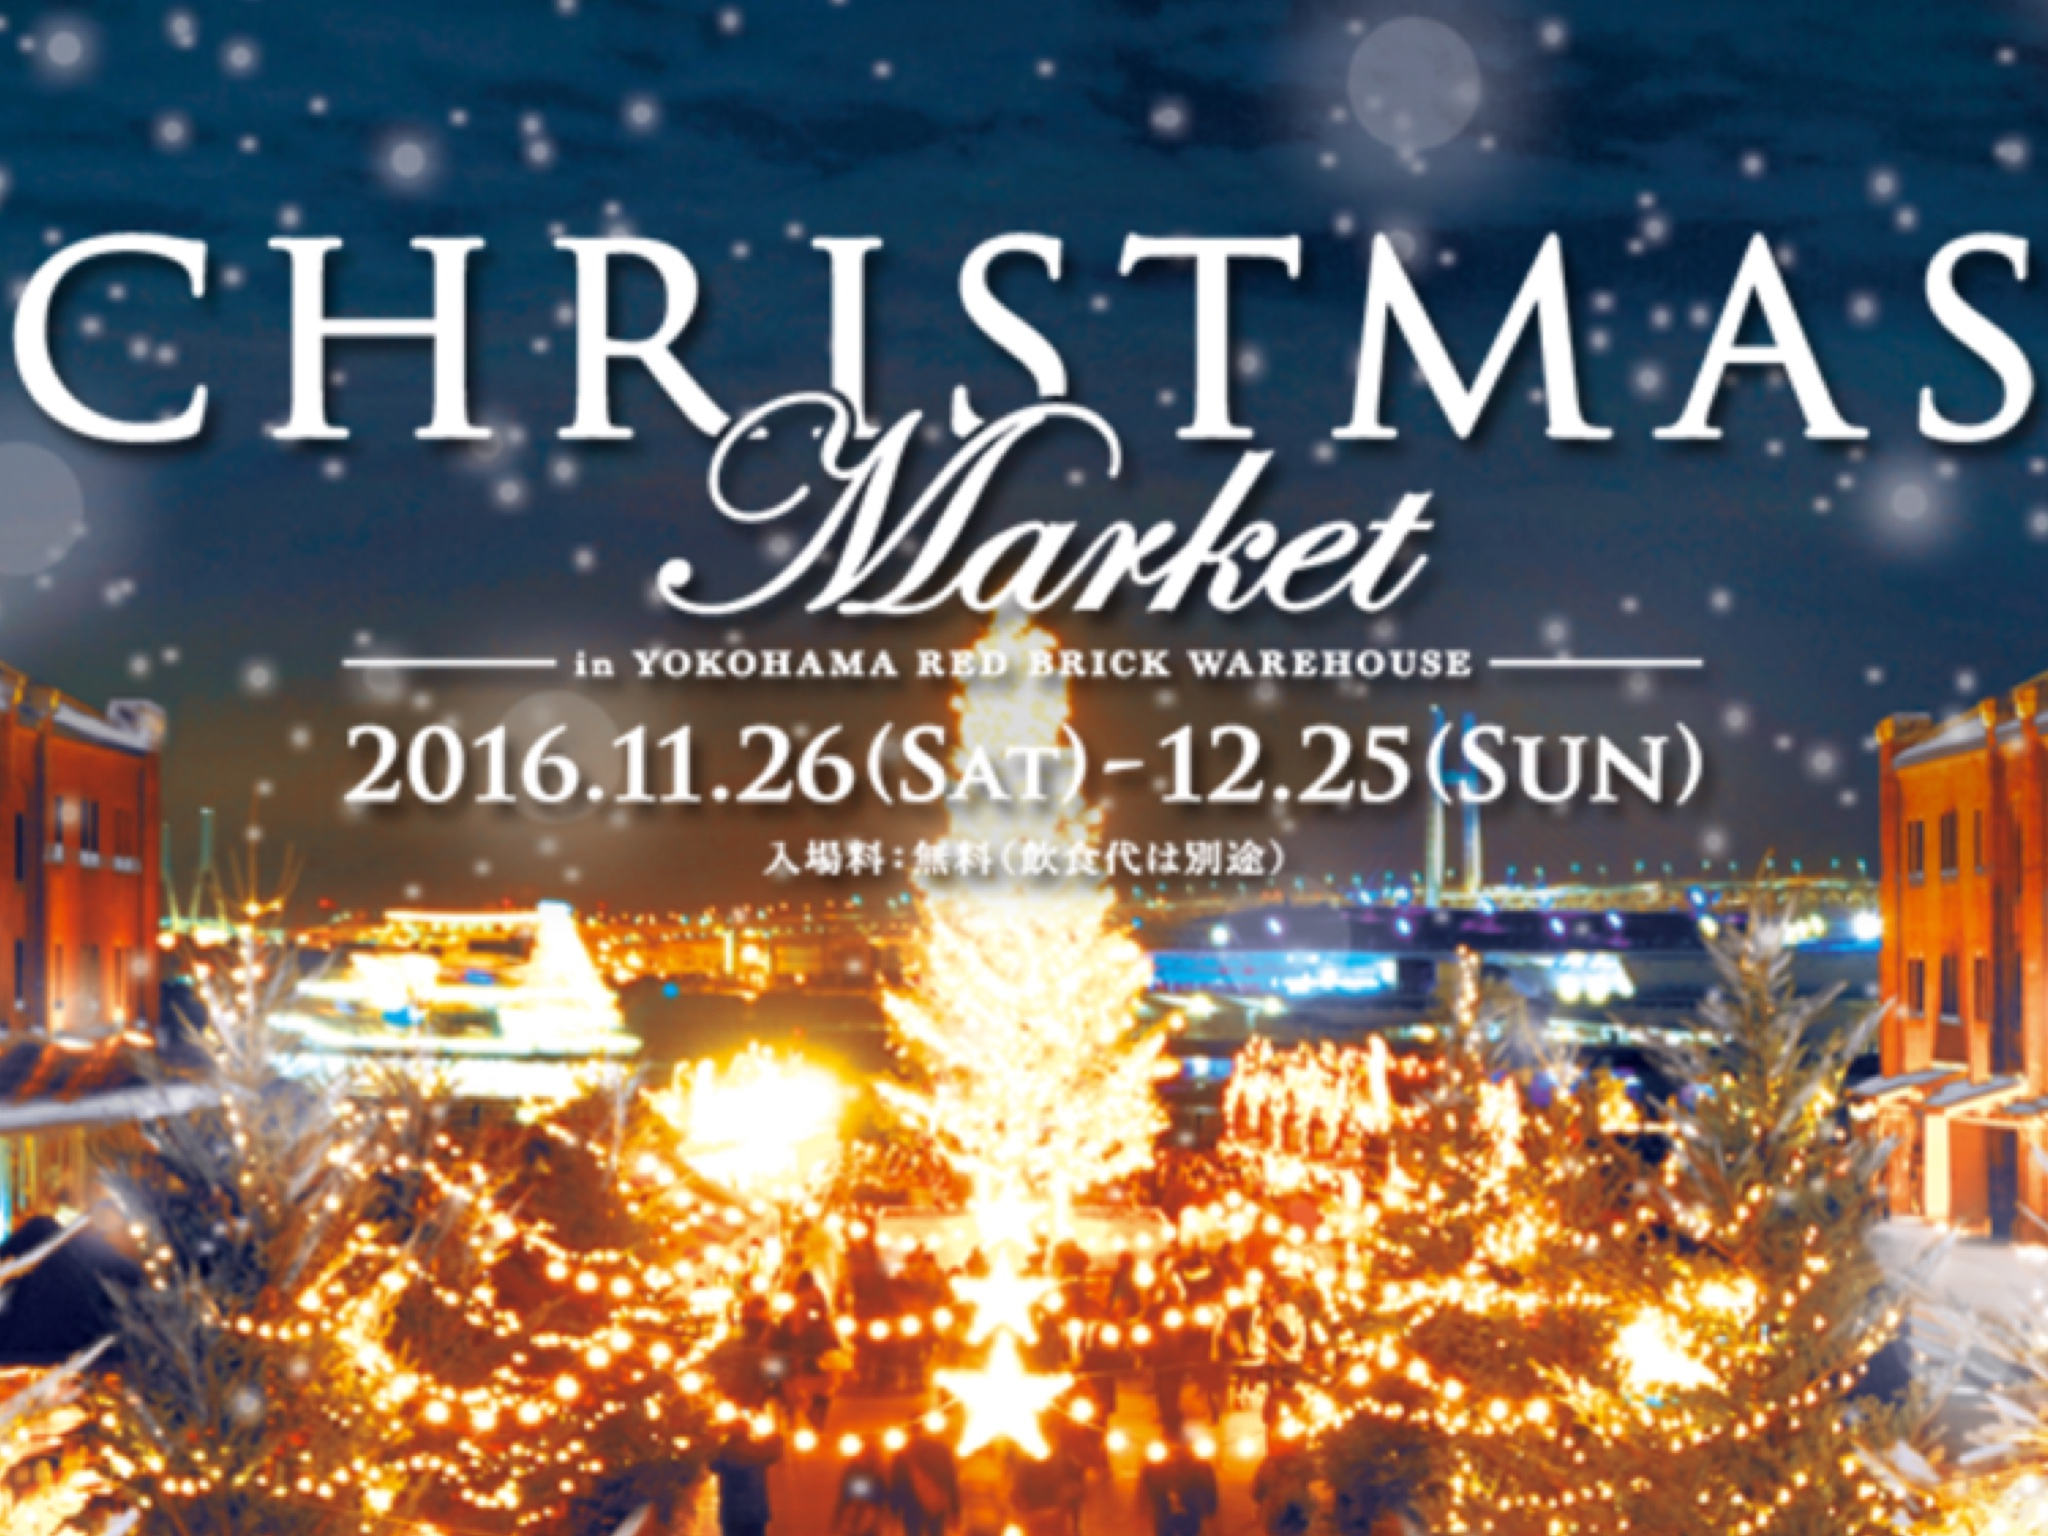 CHRISTMAS MARKET in横浜赤レンガ倉庫